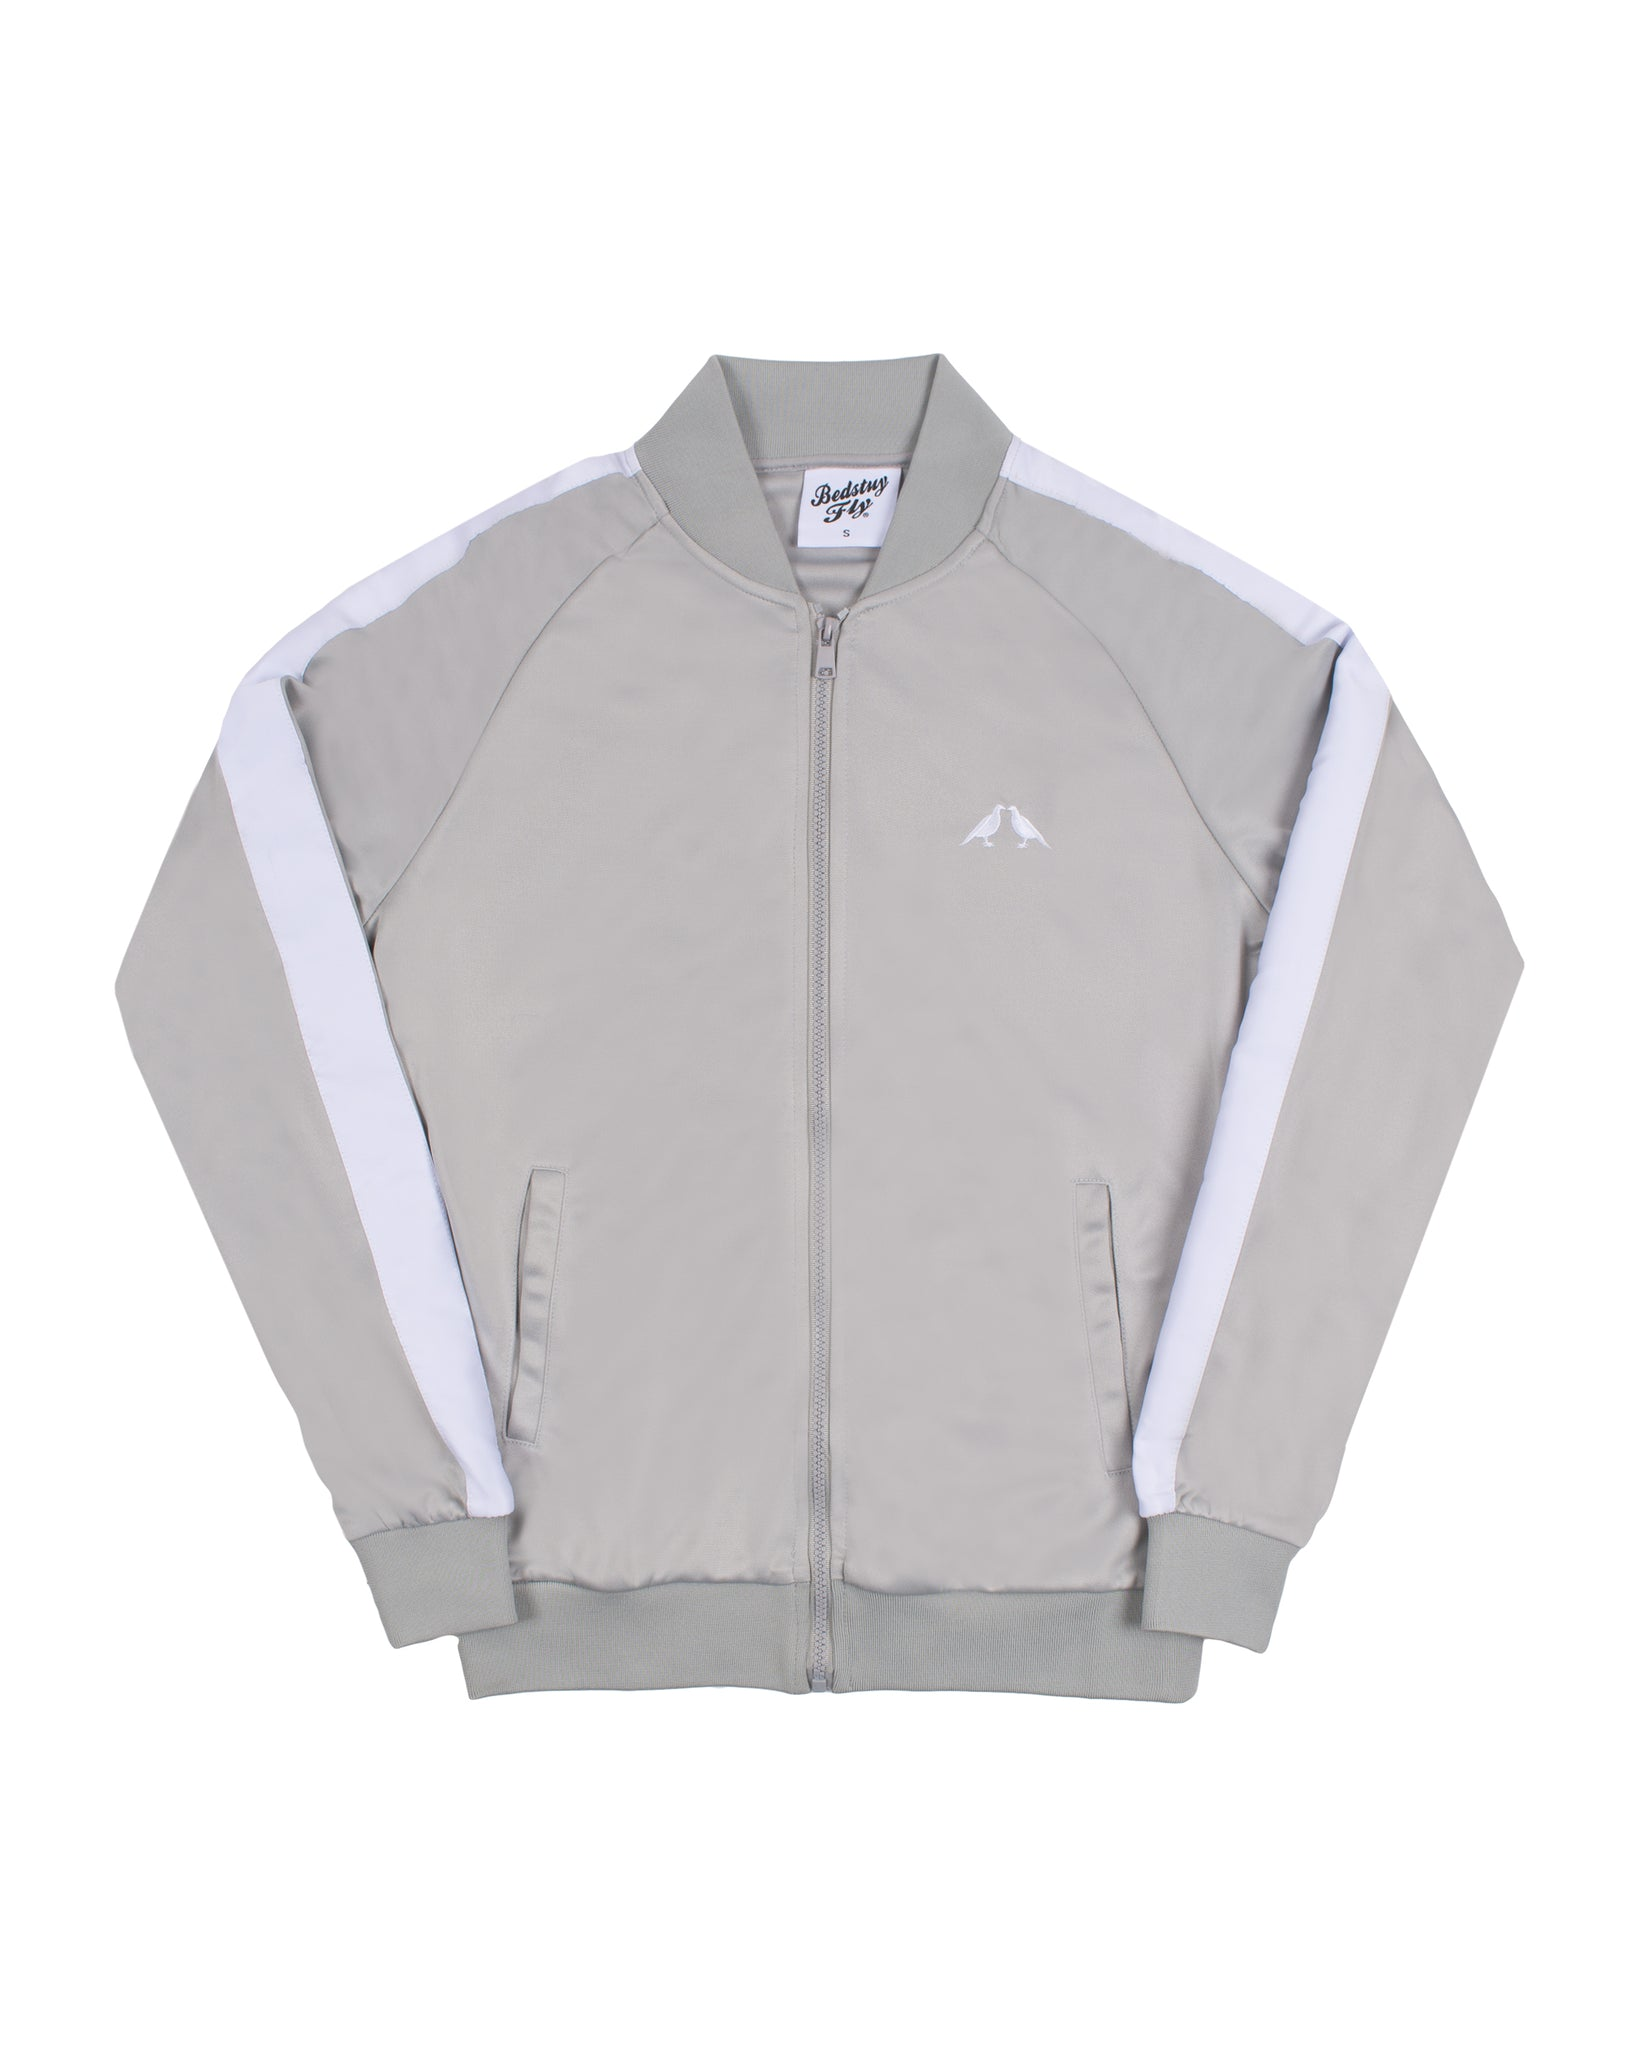 Weekend Jacket (Gry/Wht)